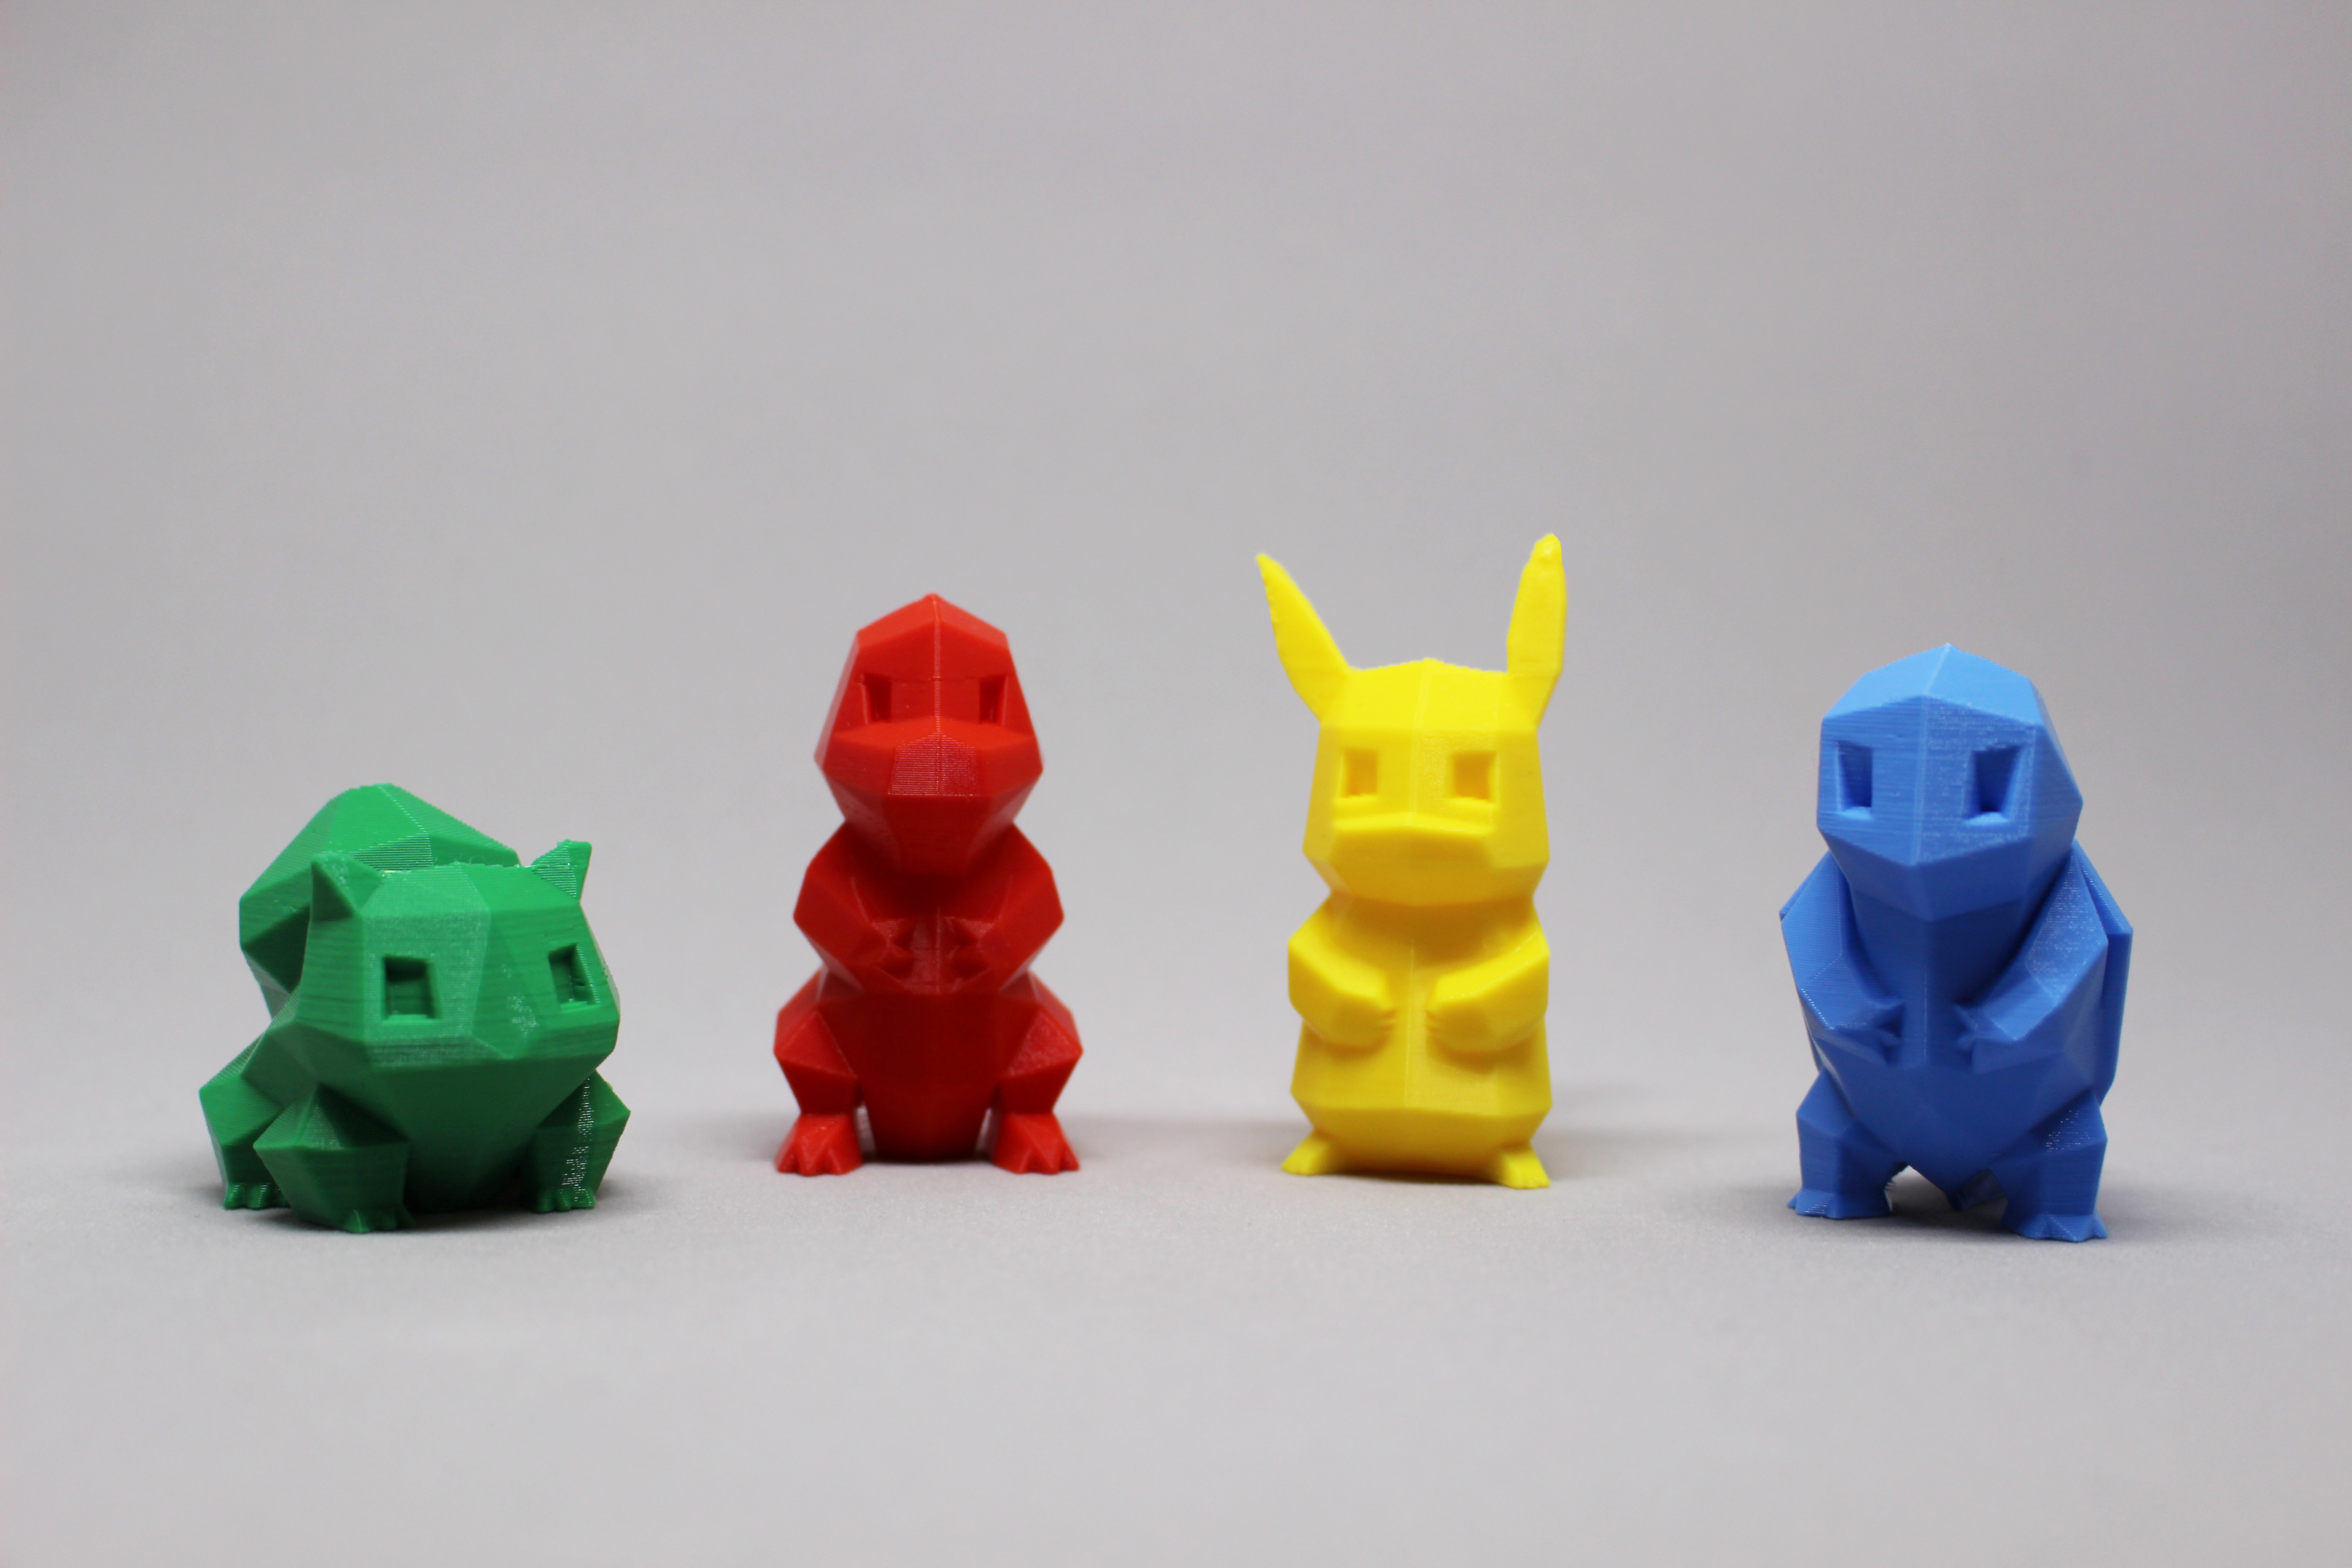 3D Printable Low - Poly Pokemon Collection by Agustin Flowalistik